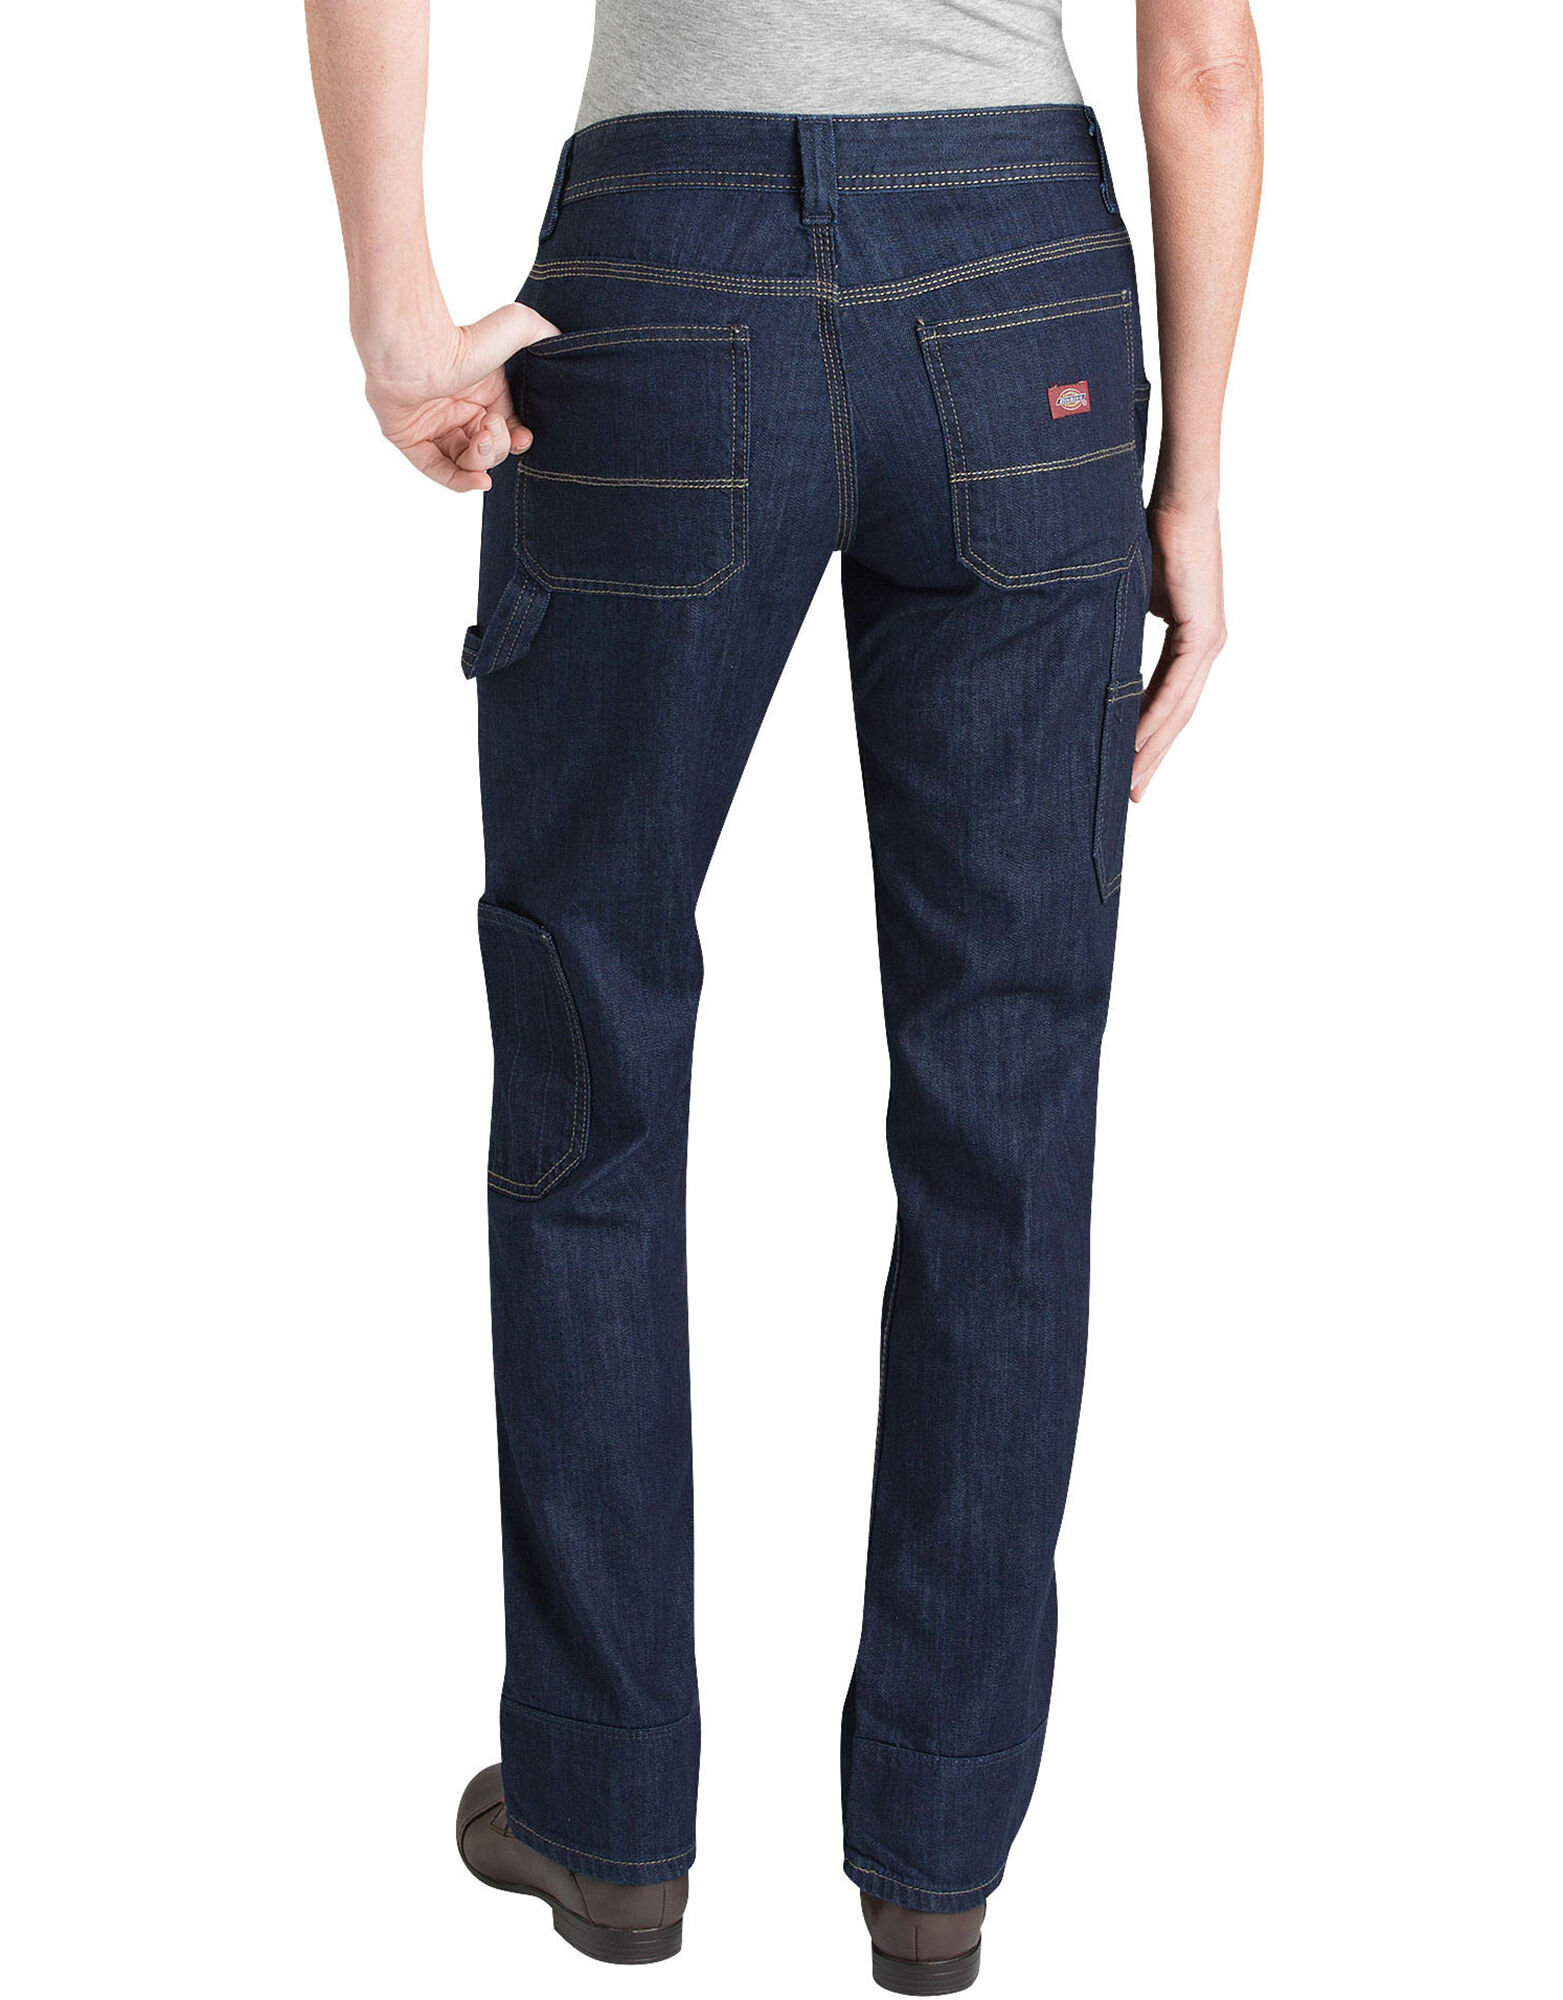 Women&39s Relaxed Fit Carpenter Denim Jean | Womens Jeans | Dickies